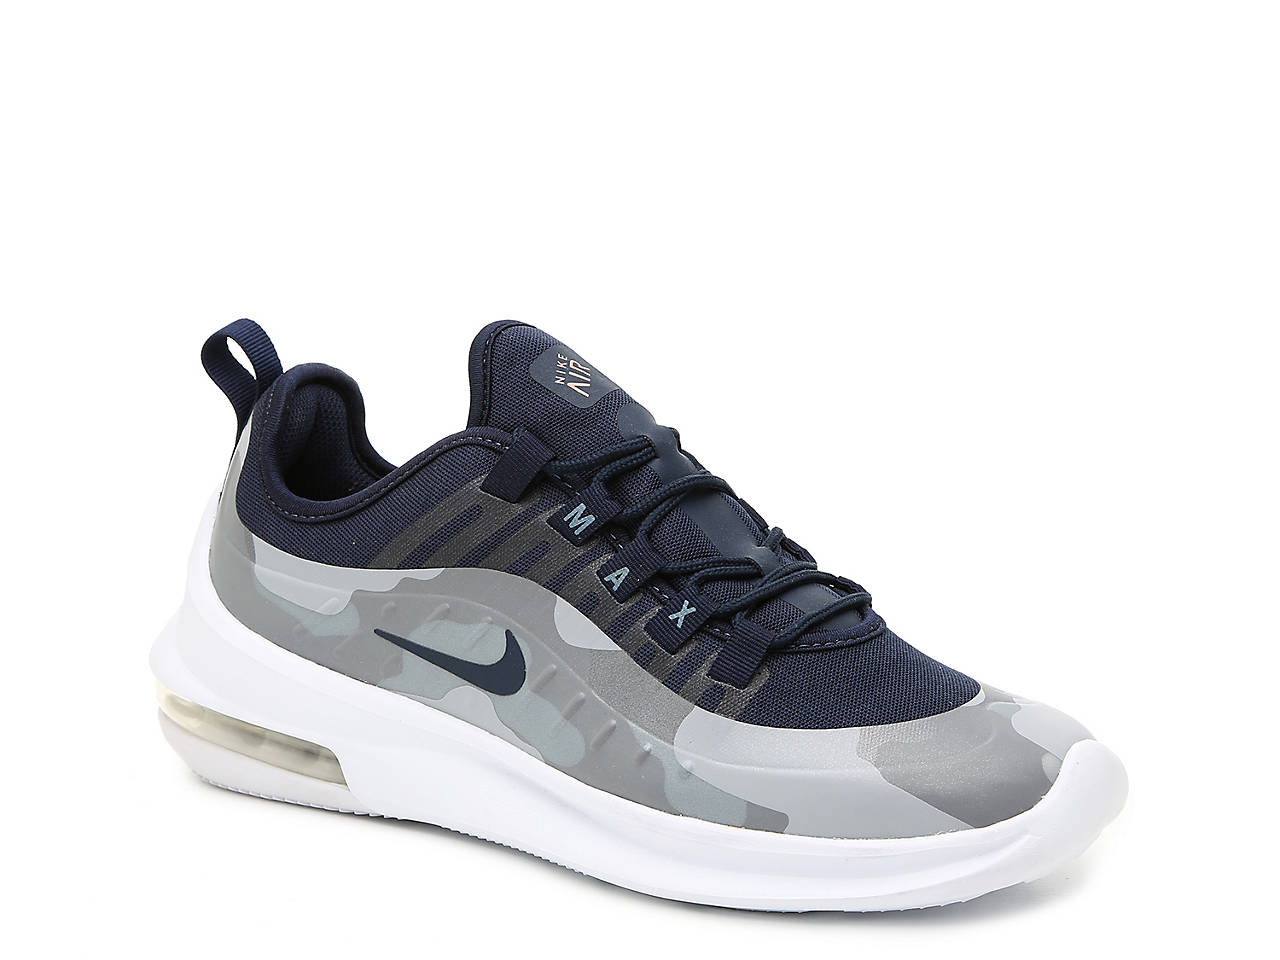 a204660e0ff Nike Air Max Axis Premium Sneaker - Women s Women s Shoes